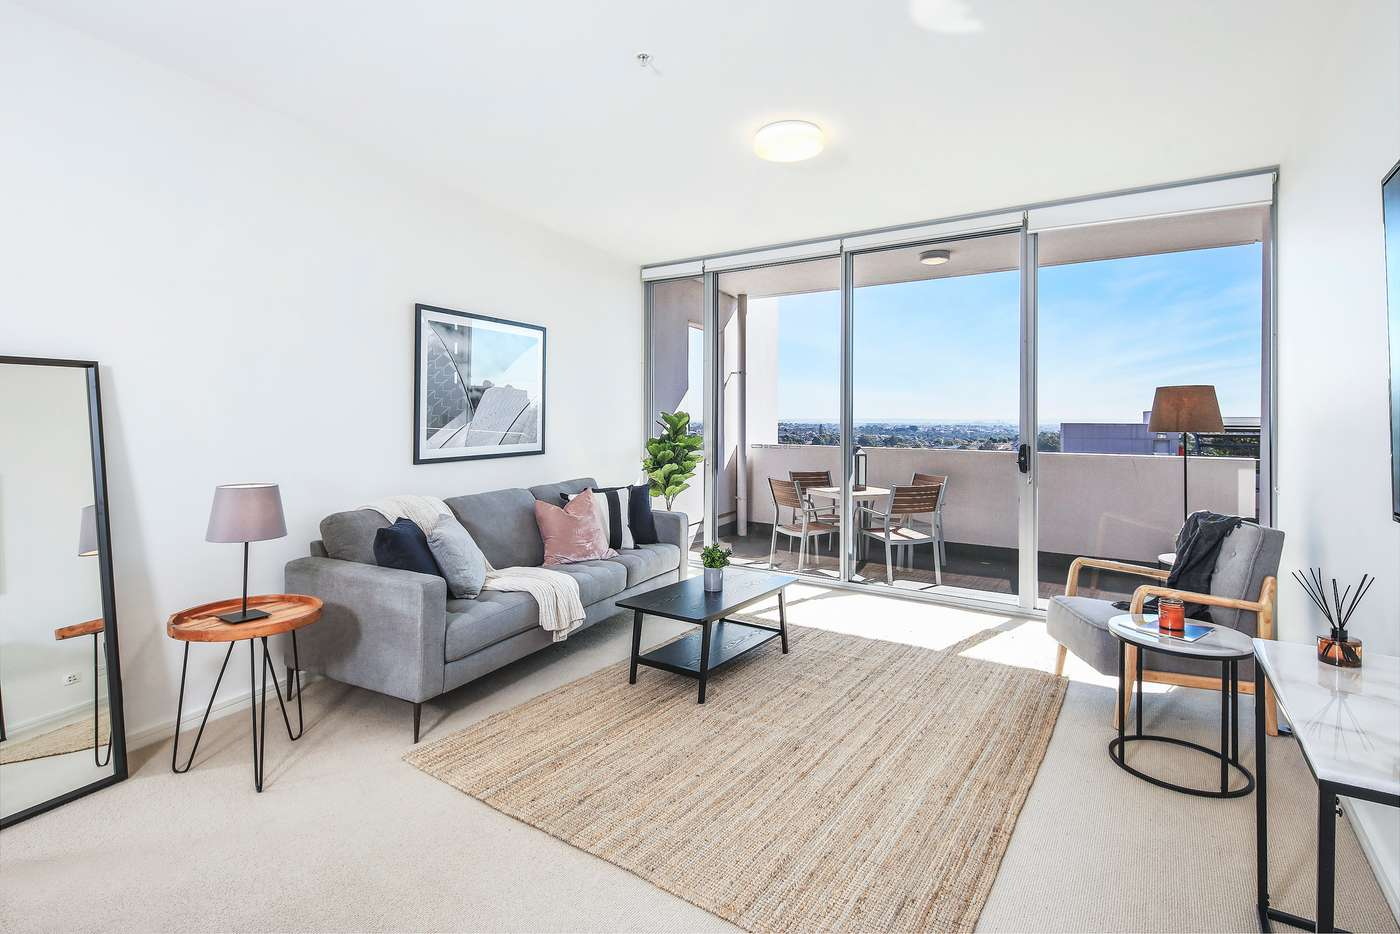 Main view of Homely apartment listing, 801A/1 Jack Brabham Drive, Hurstville NSW 2220